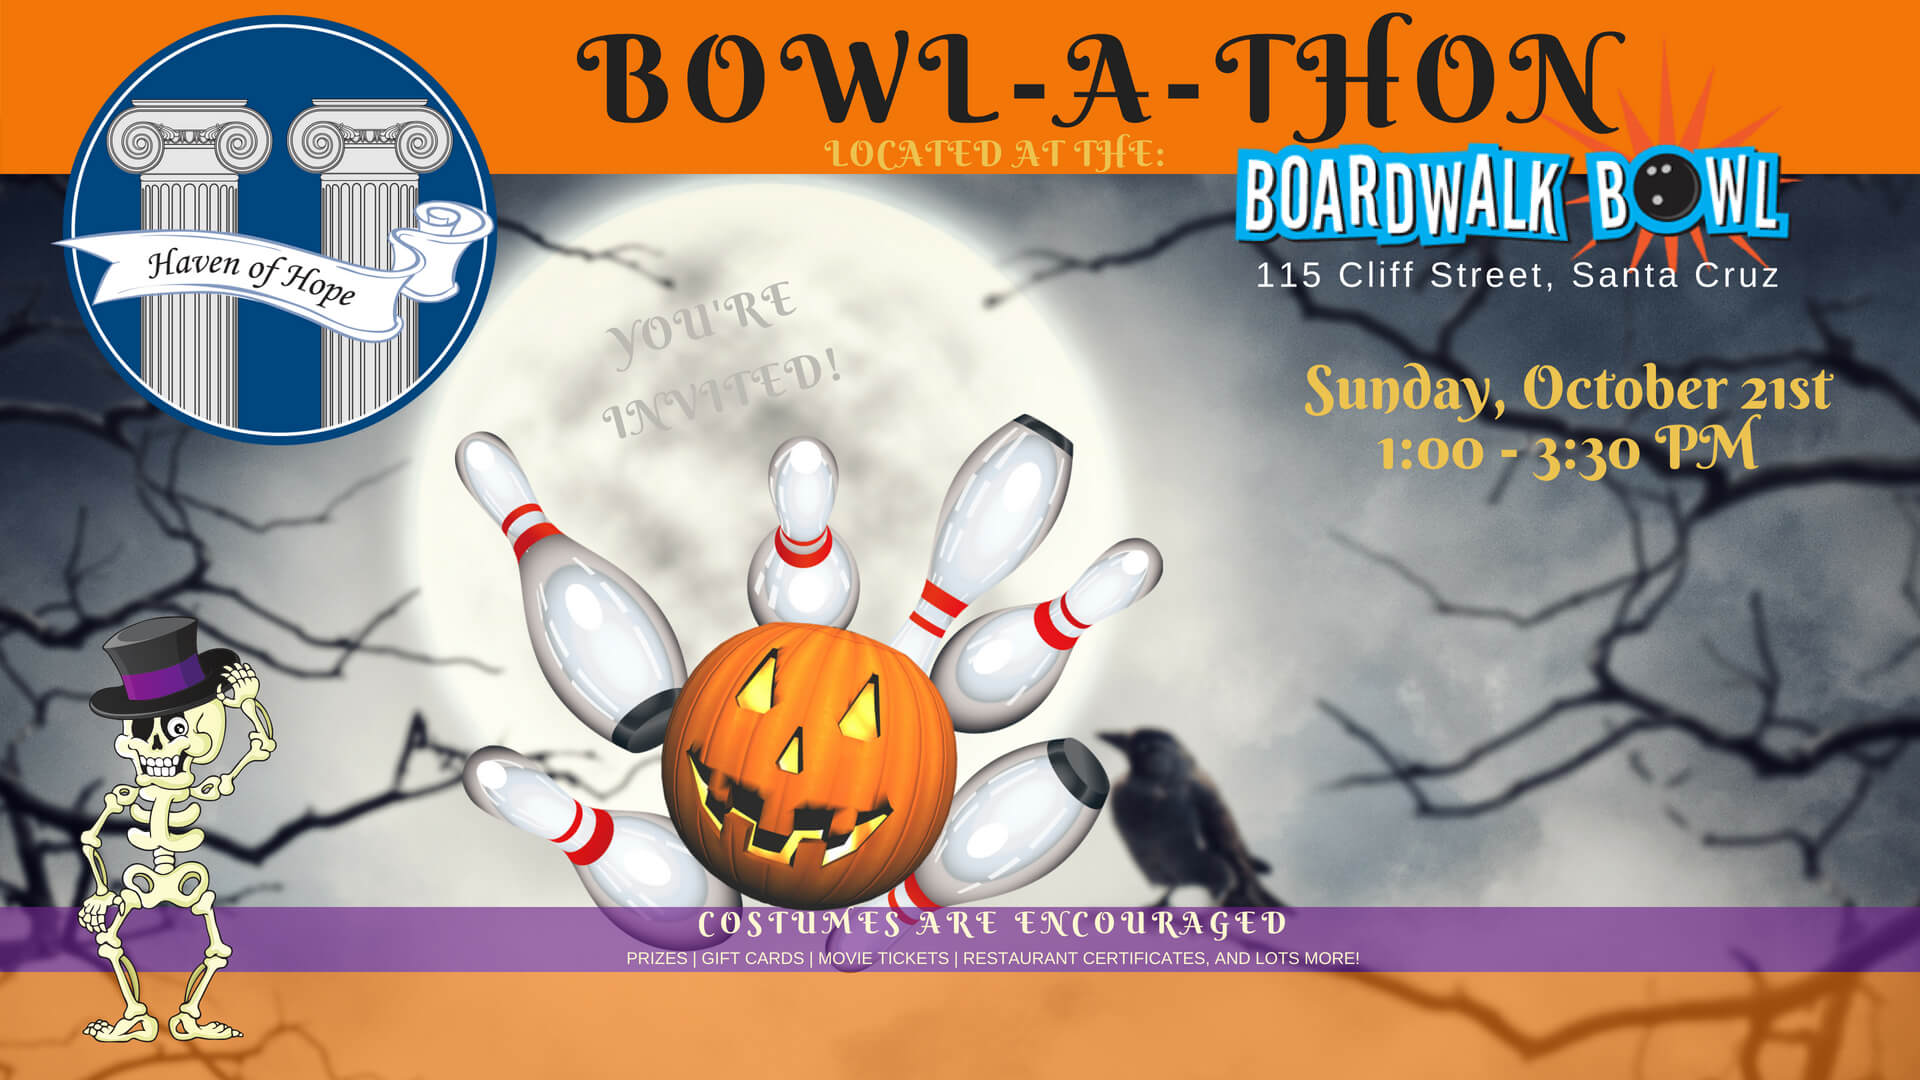 Bowl-a-thon 2018 @ Boardwalk Bowl | Santa Cruz | California | United States